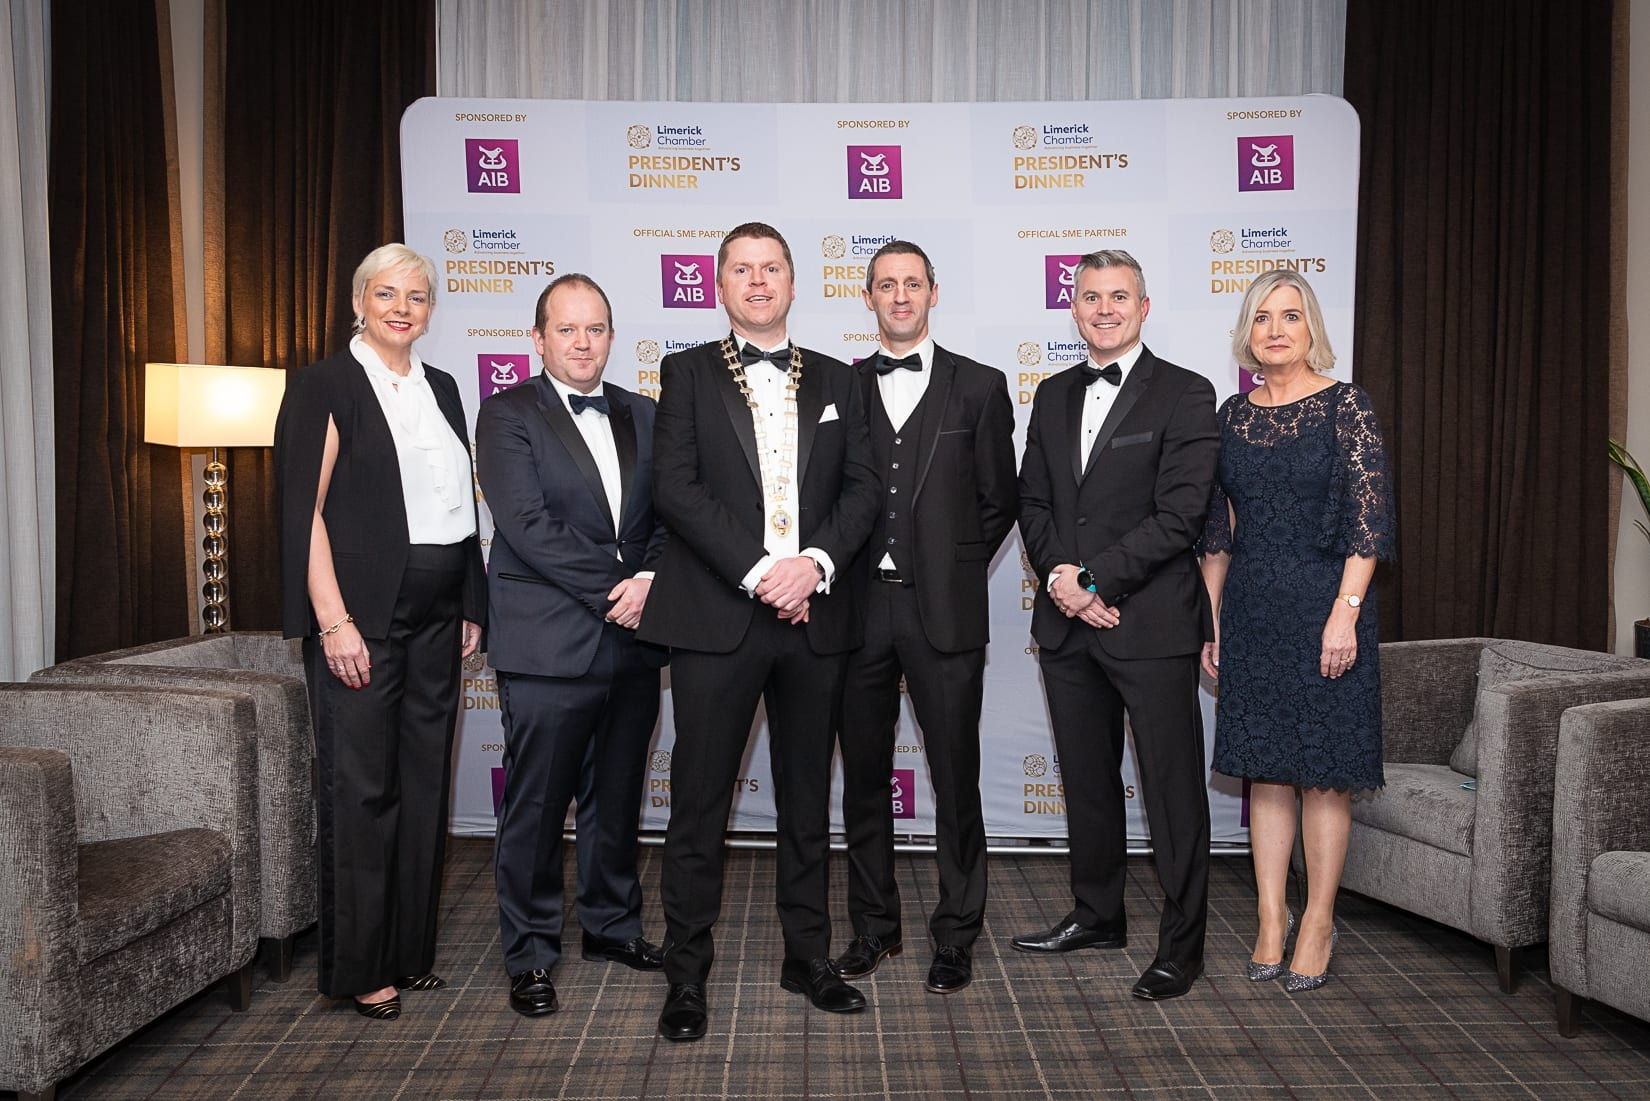 No repro fee-Limerick Chamber President's Dinner and Limerick Chamber Regional Business Awards 2019 which was held in the Strand Hotel on Friday 15th November /  AIB Sponsors/  - From Left to Right: Hilary Gormily, Conor O'Sullivan, Eoin Ryan - President Limerick Chamber, Kieran Considine, Mark Doyle, Judy Tighe all from AIB.  Photo credit Shauna Kennedy